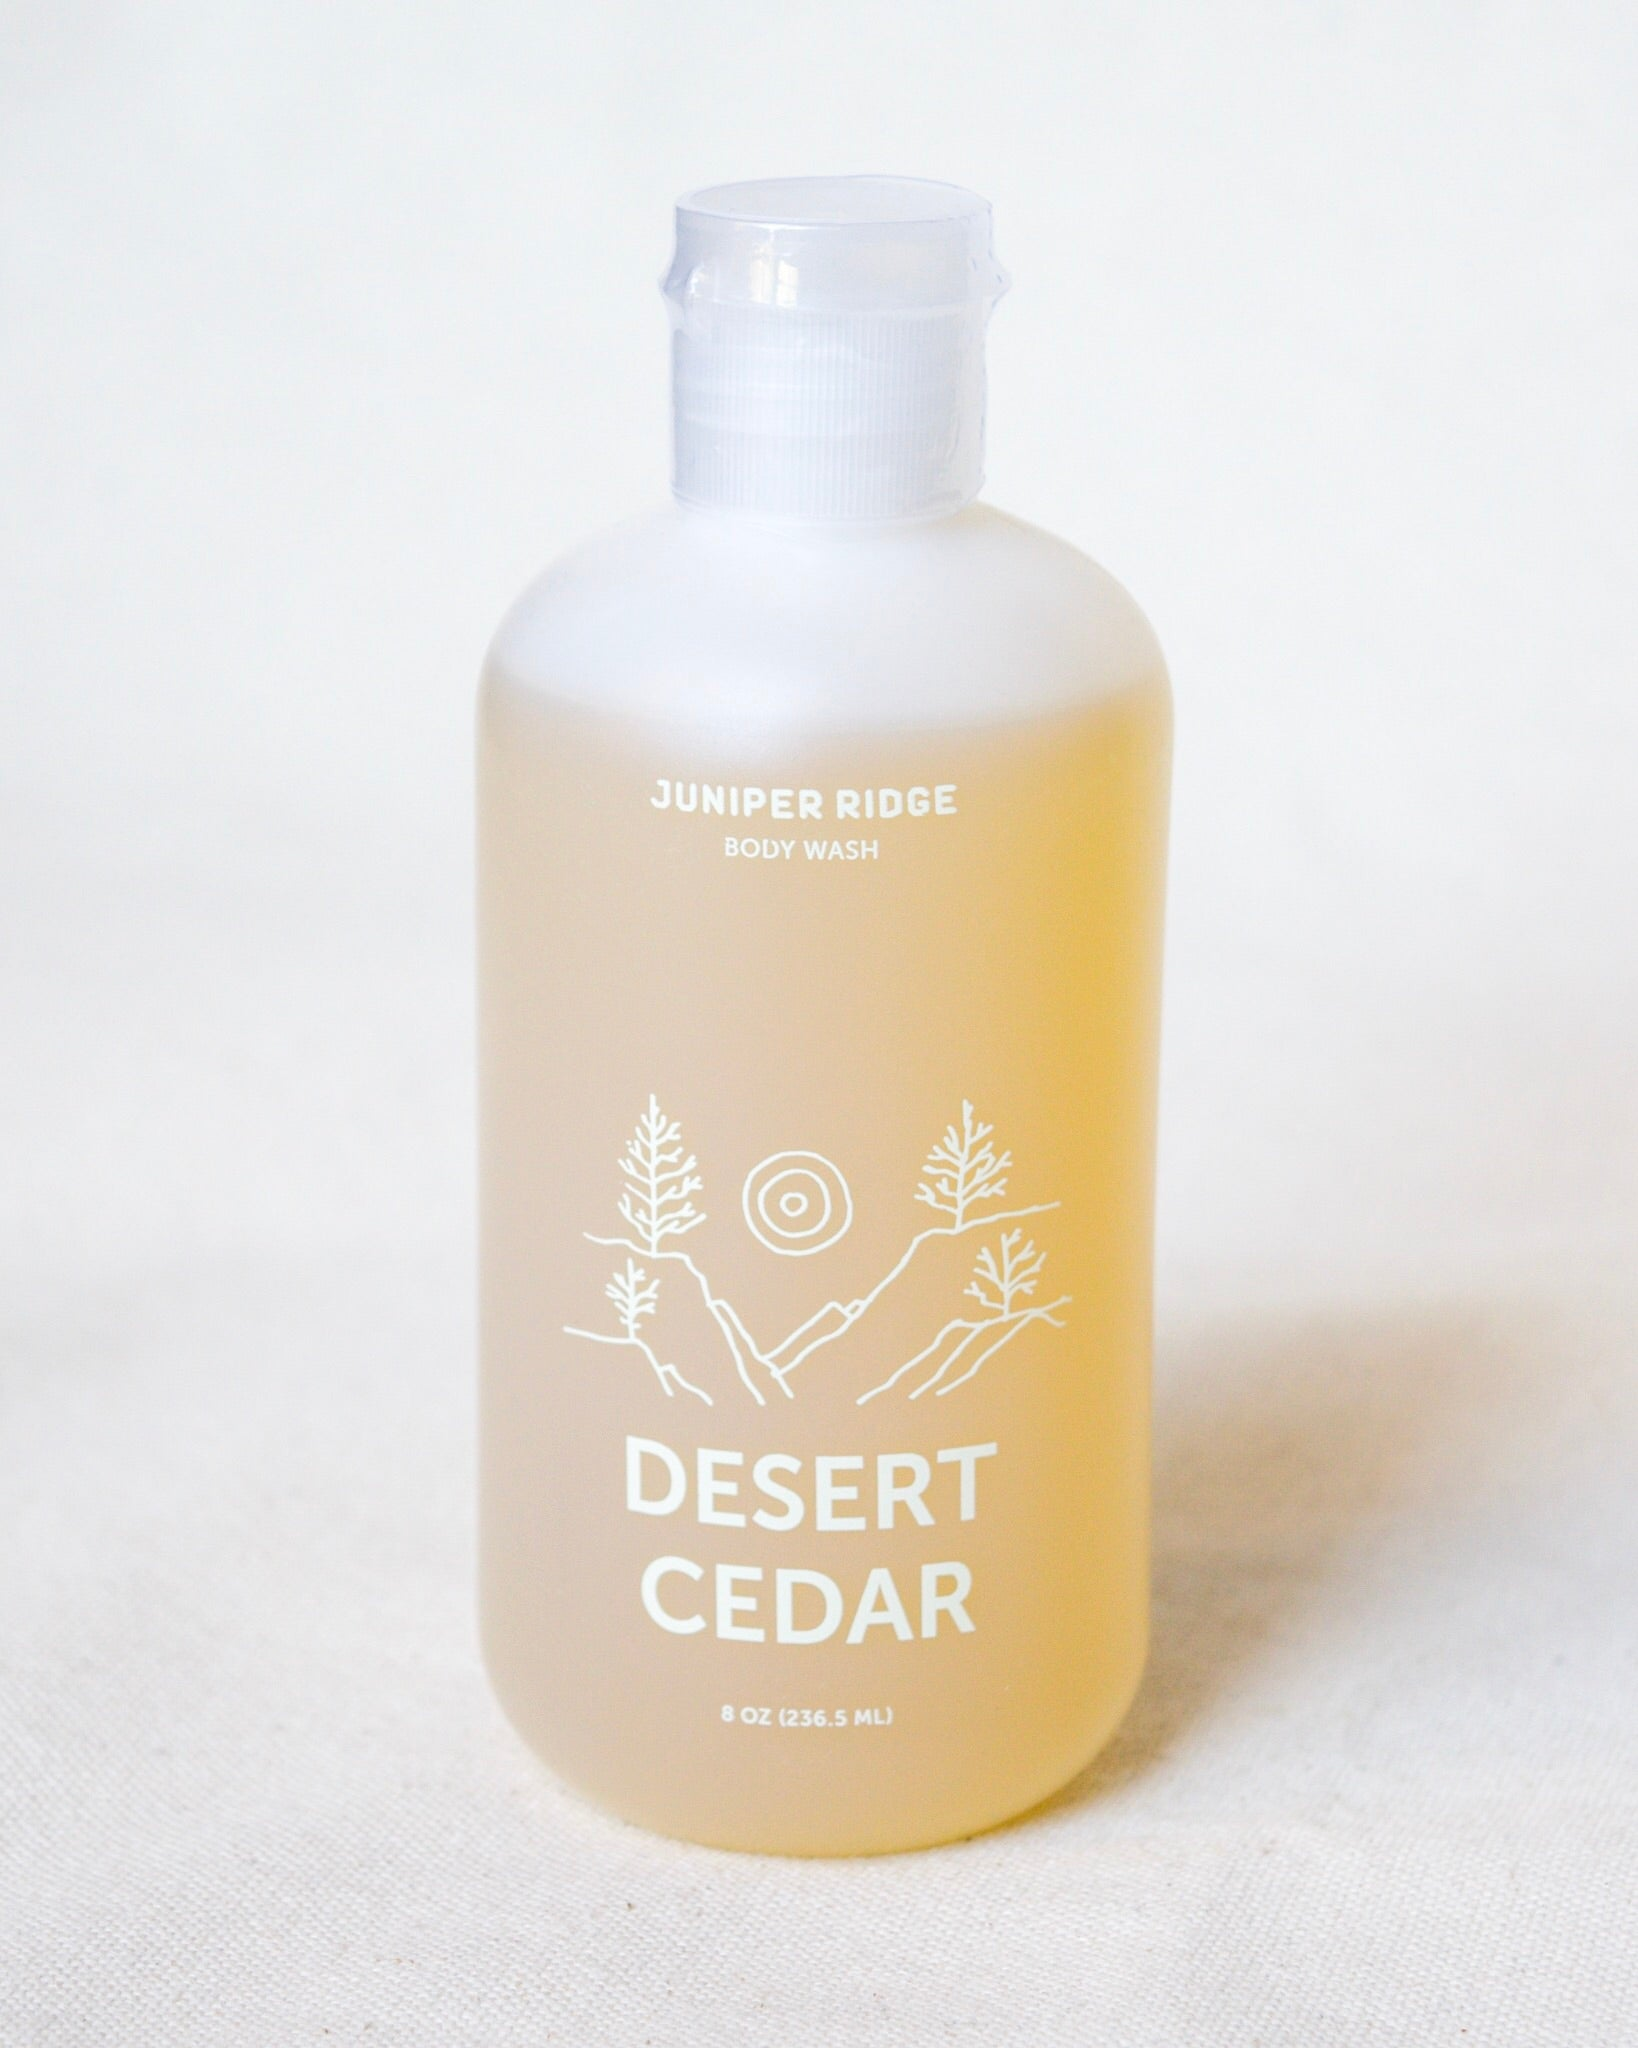 Desert Cedar | Body Wash | 8 oz.